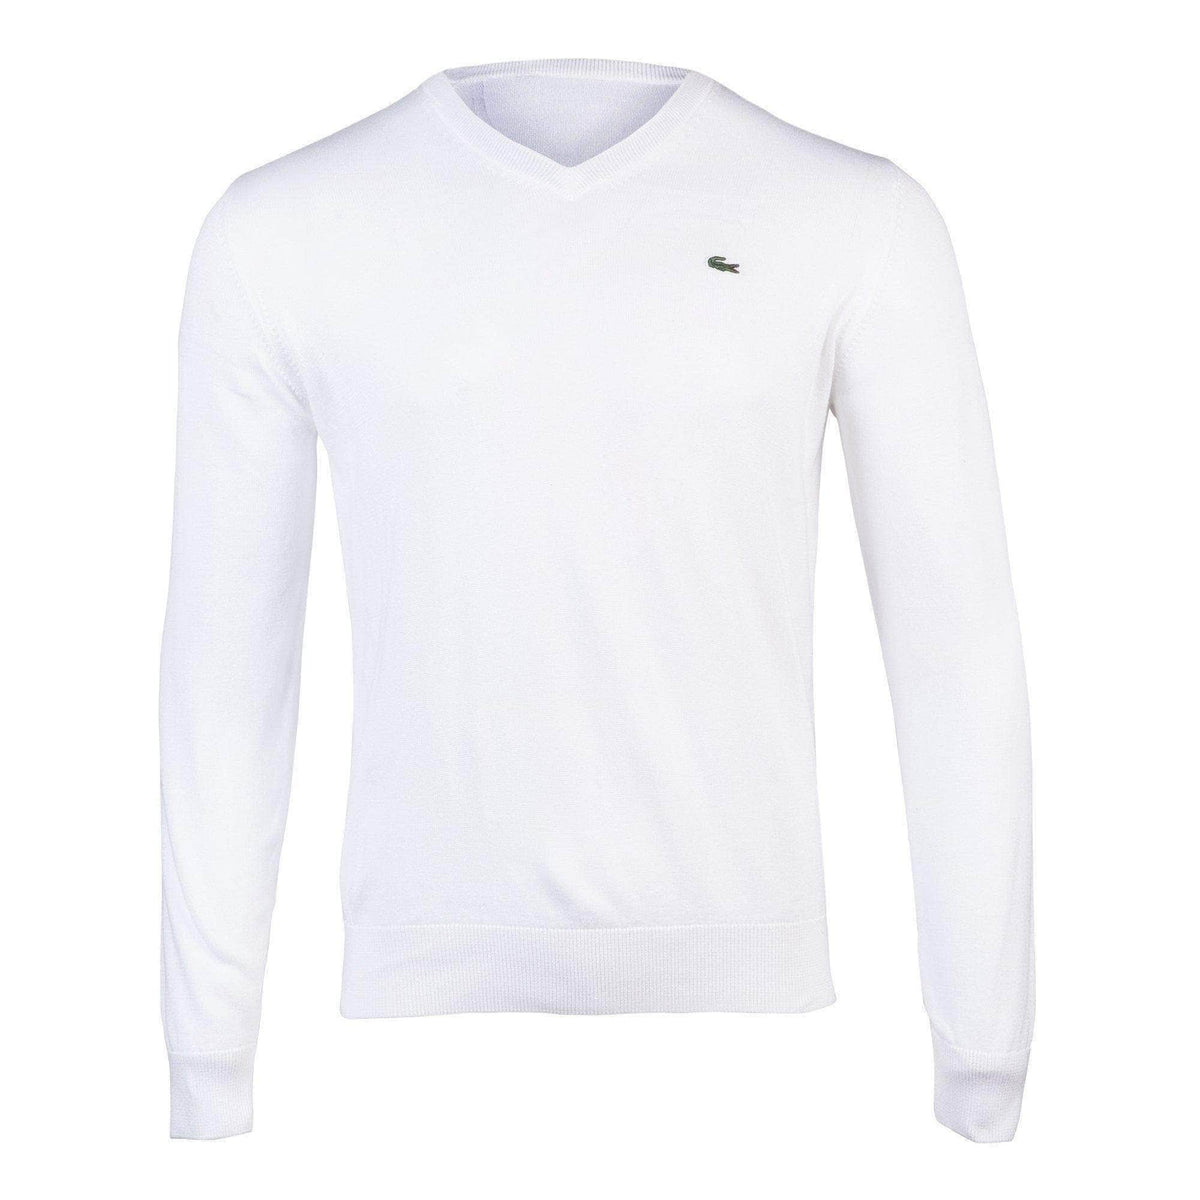 Lacoste APPAREL Lacoste Cotton Jersey V-Neck Sweater - Men's